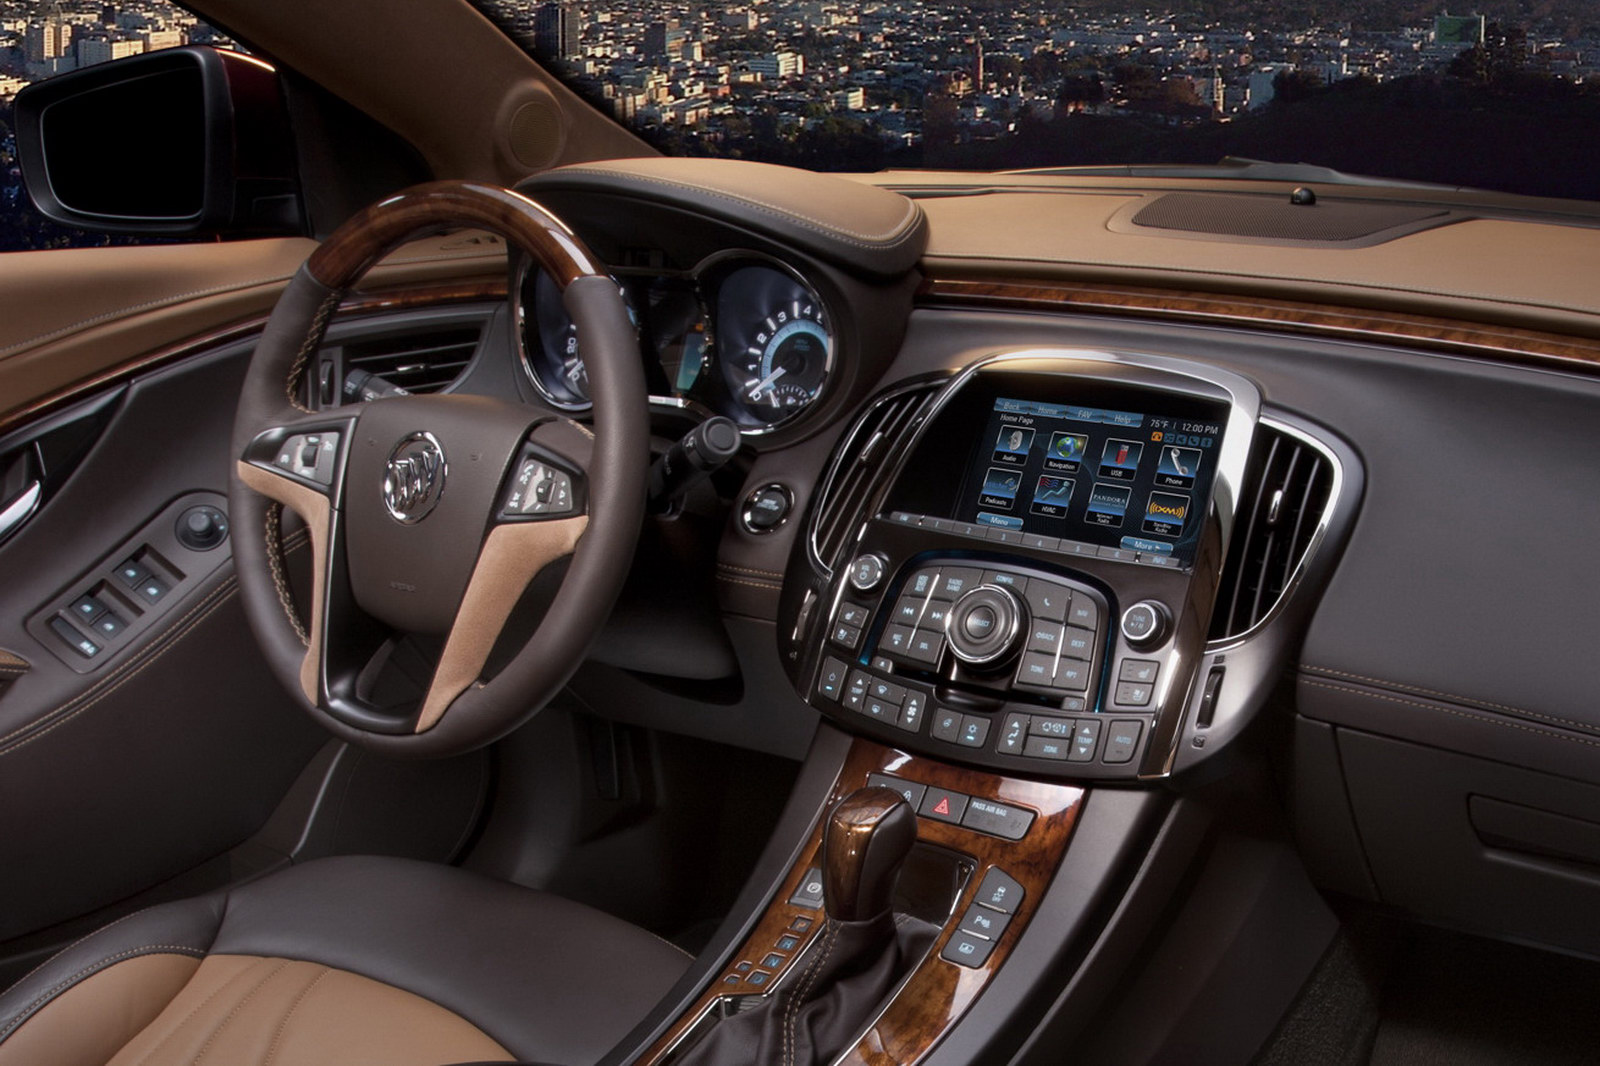 buick lacrosse images #6